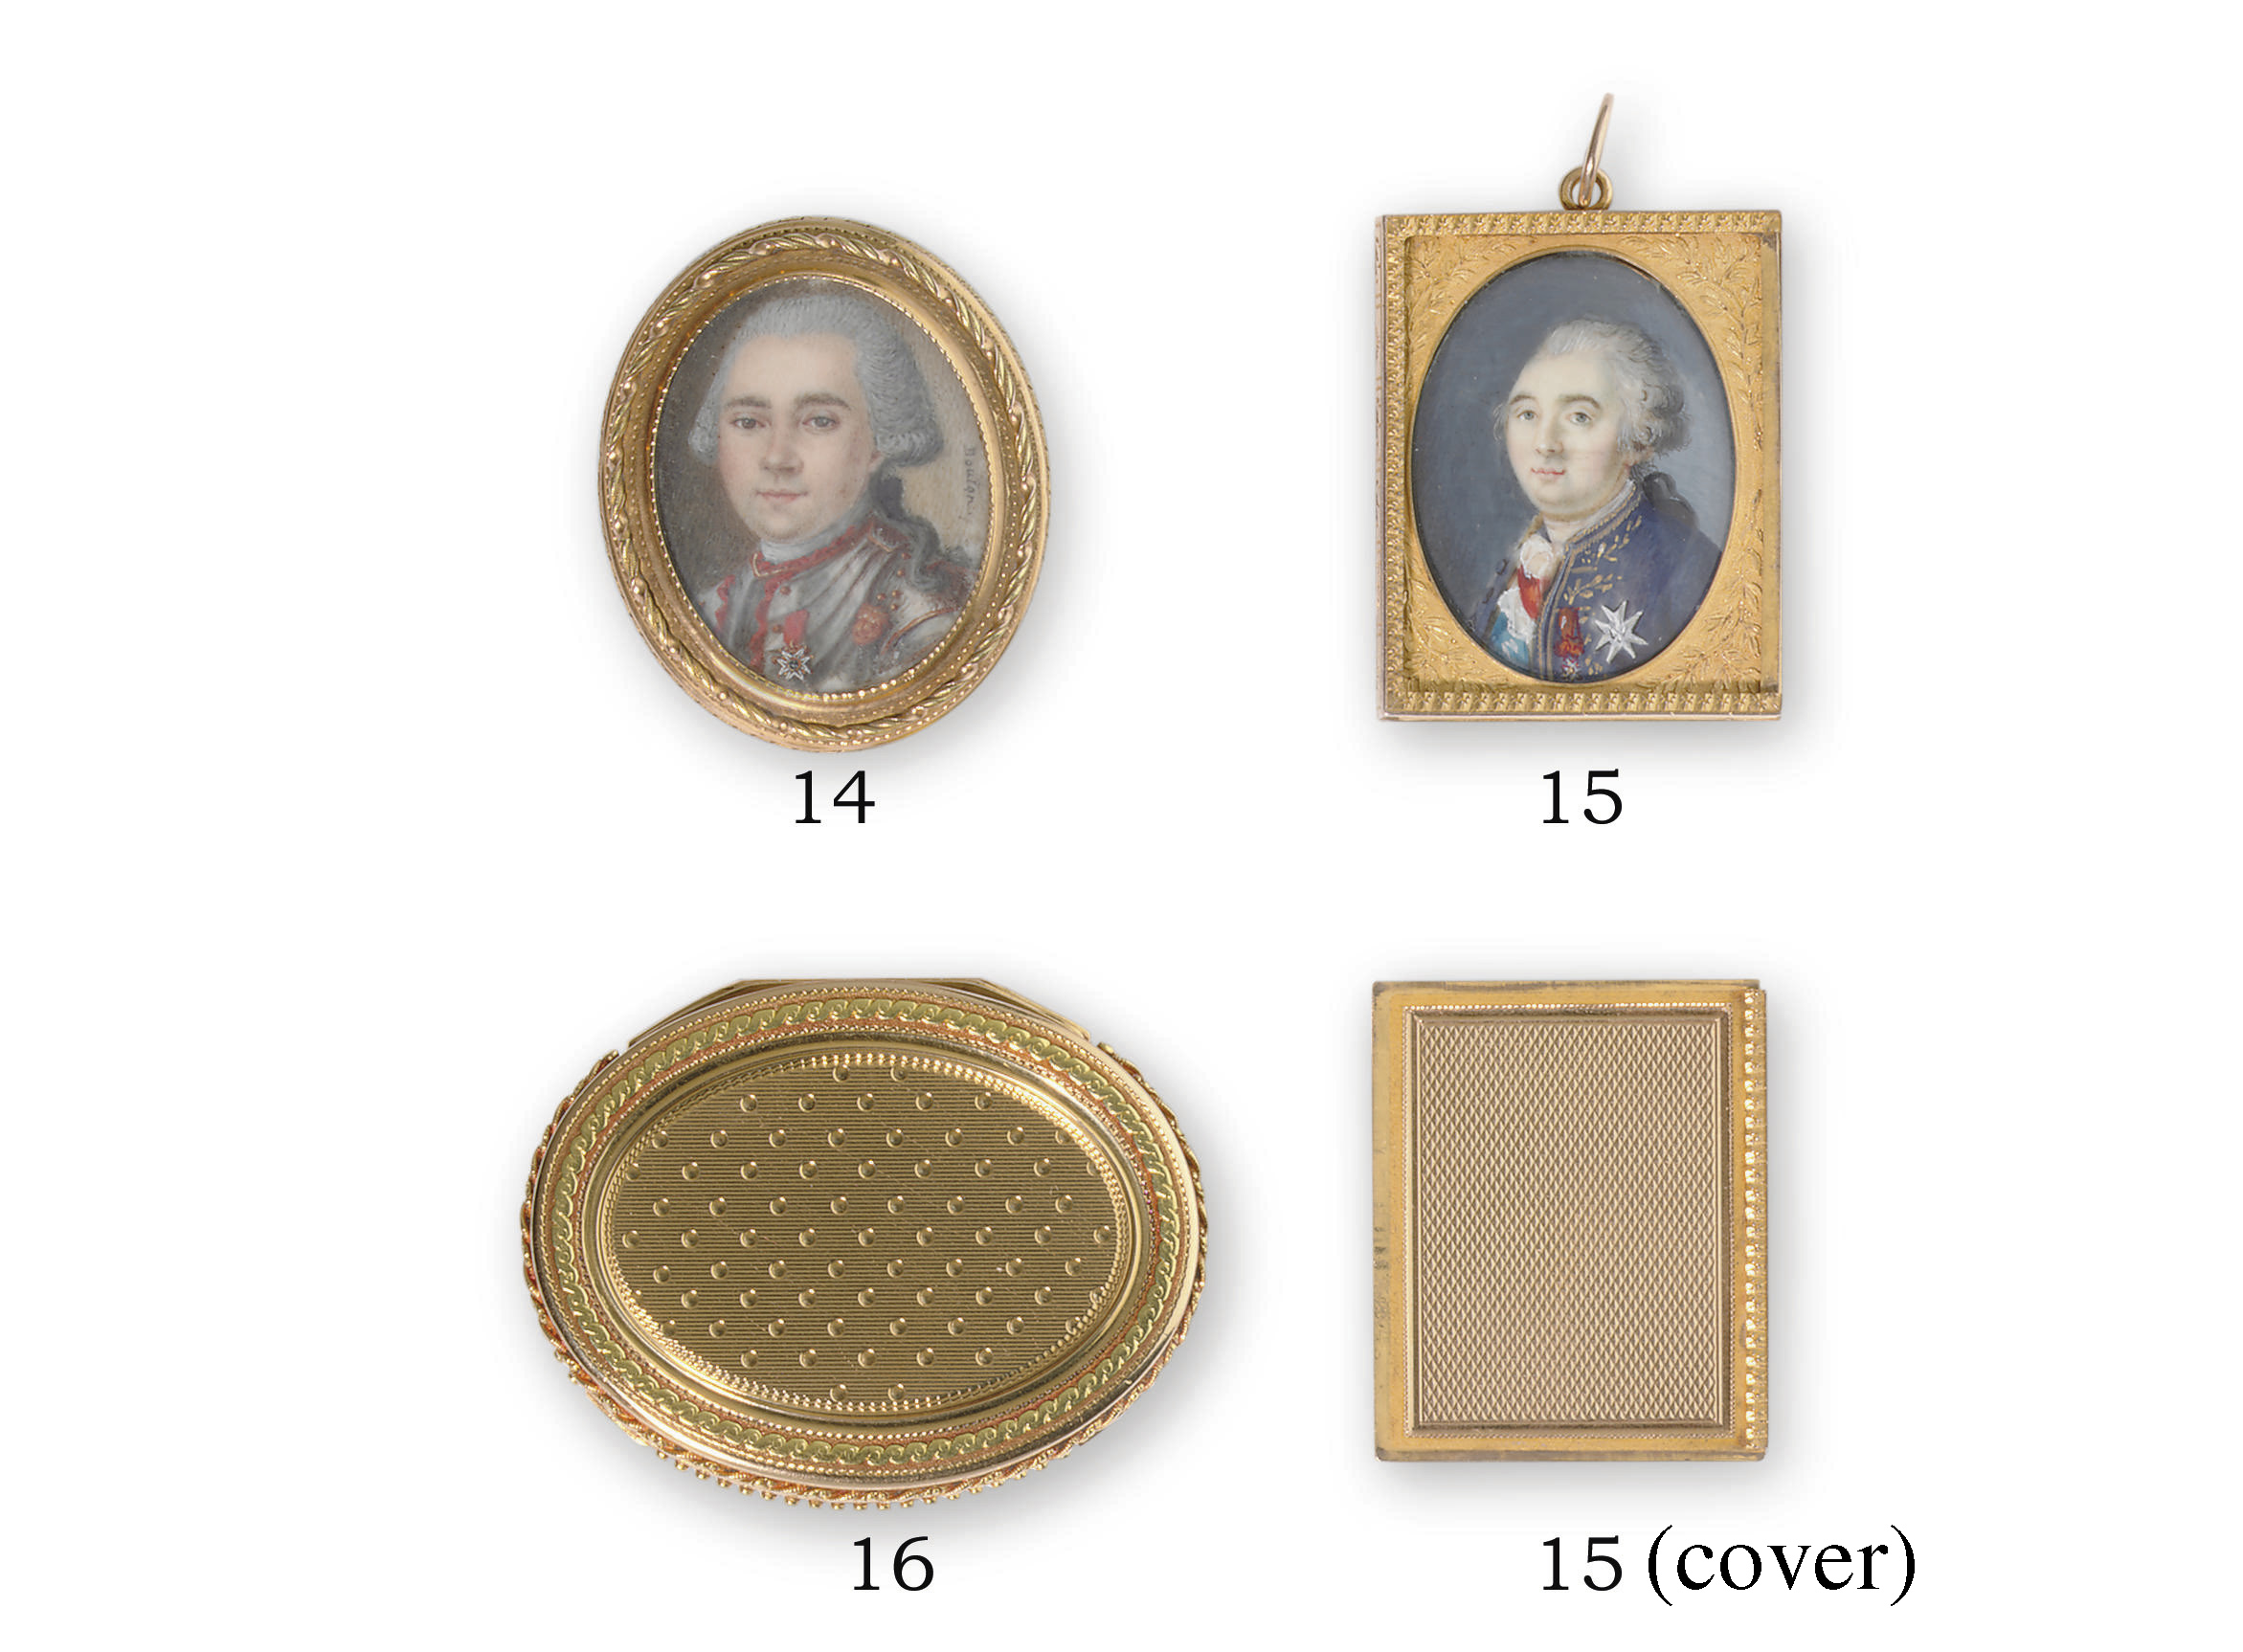 A FRENCH TWO-COLOR GOLD SNUFF BOX